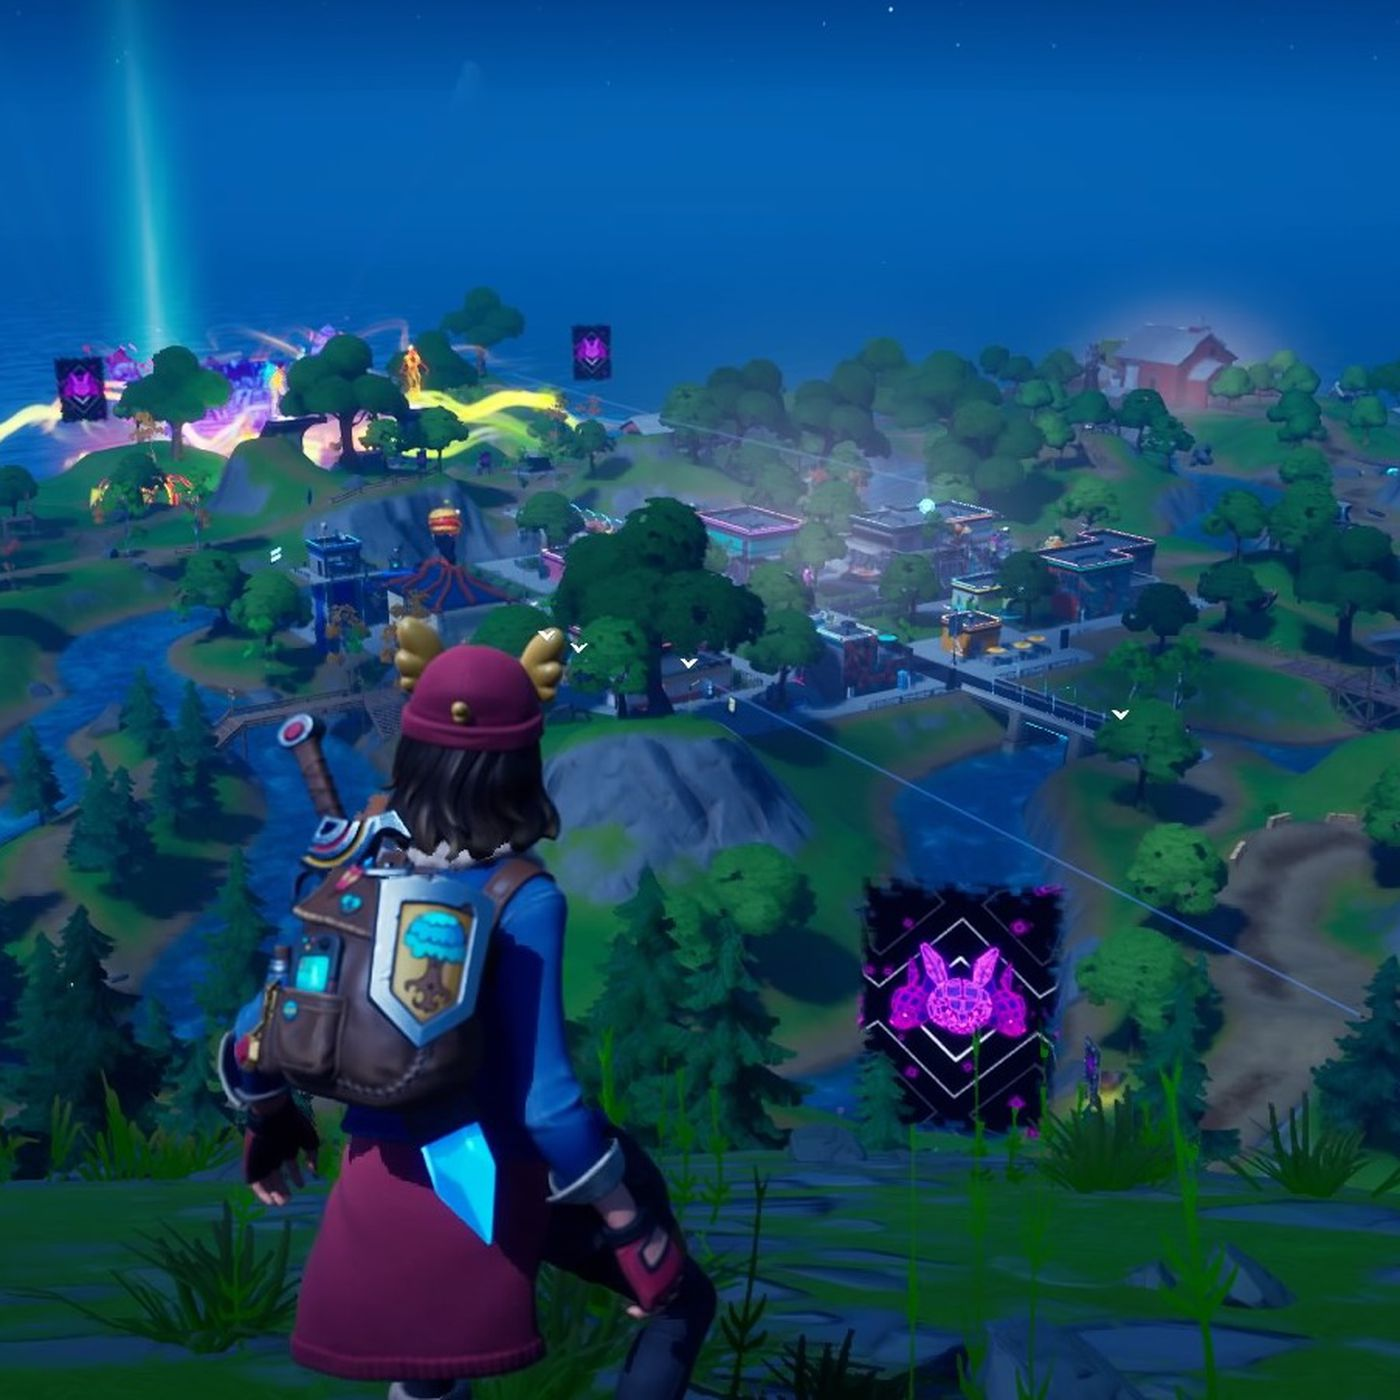 Fortnite S New Experimental Mode Is About Partying Not Fighting